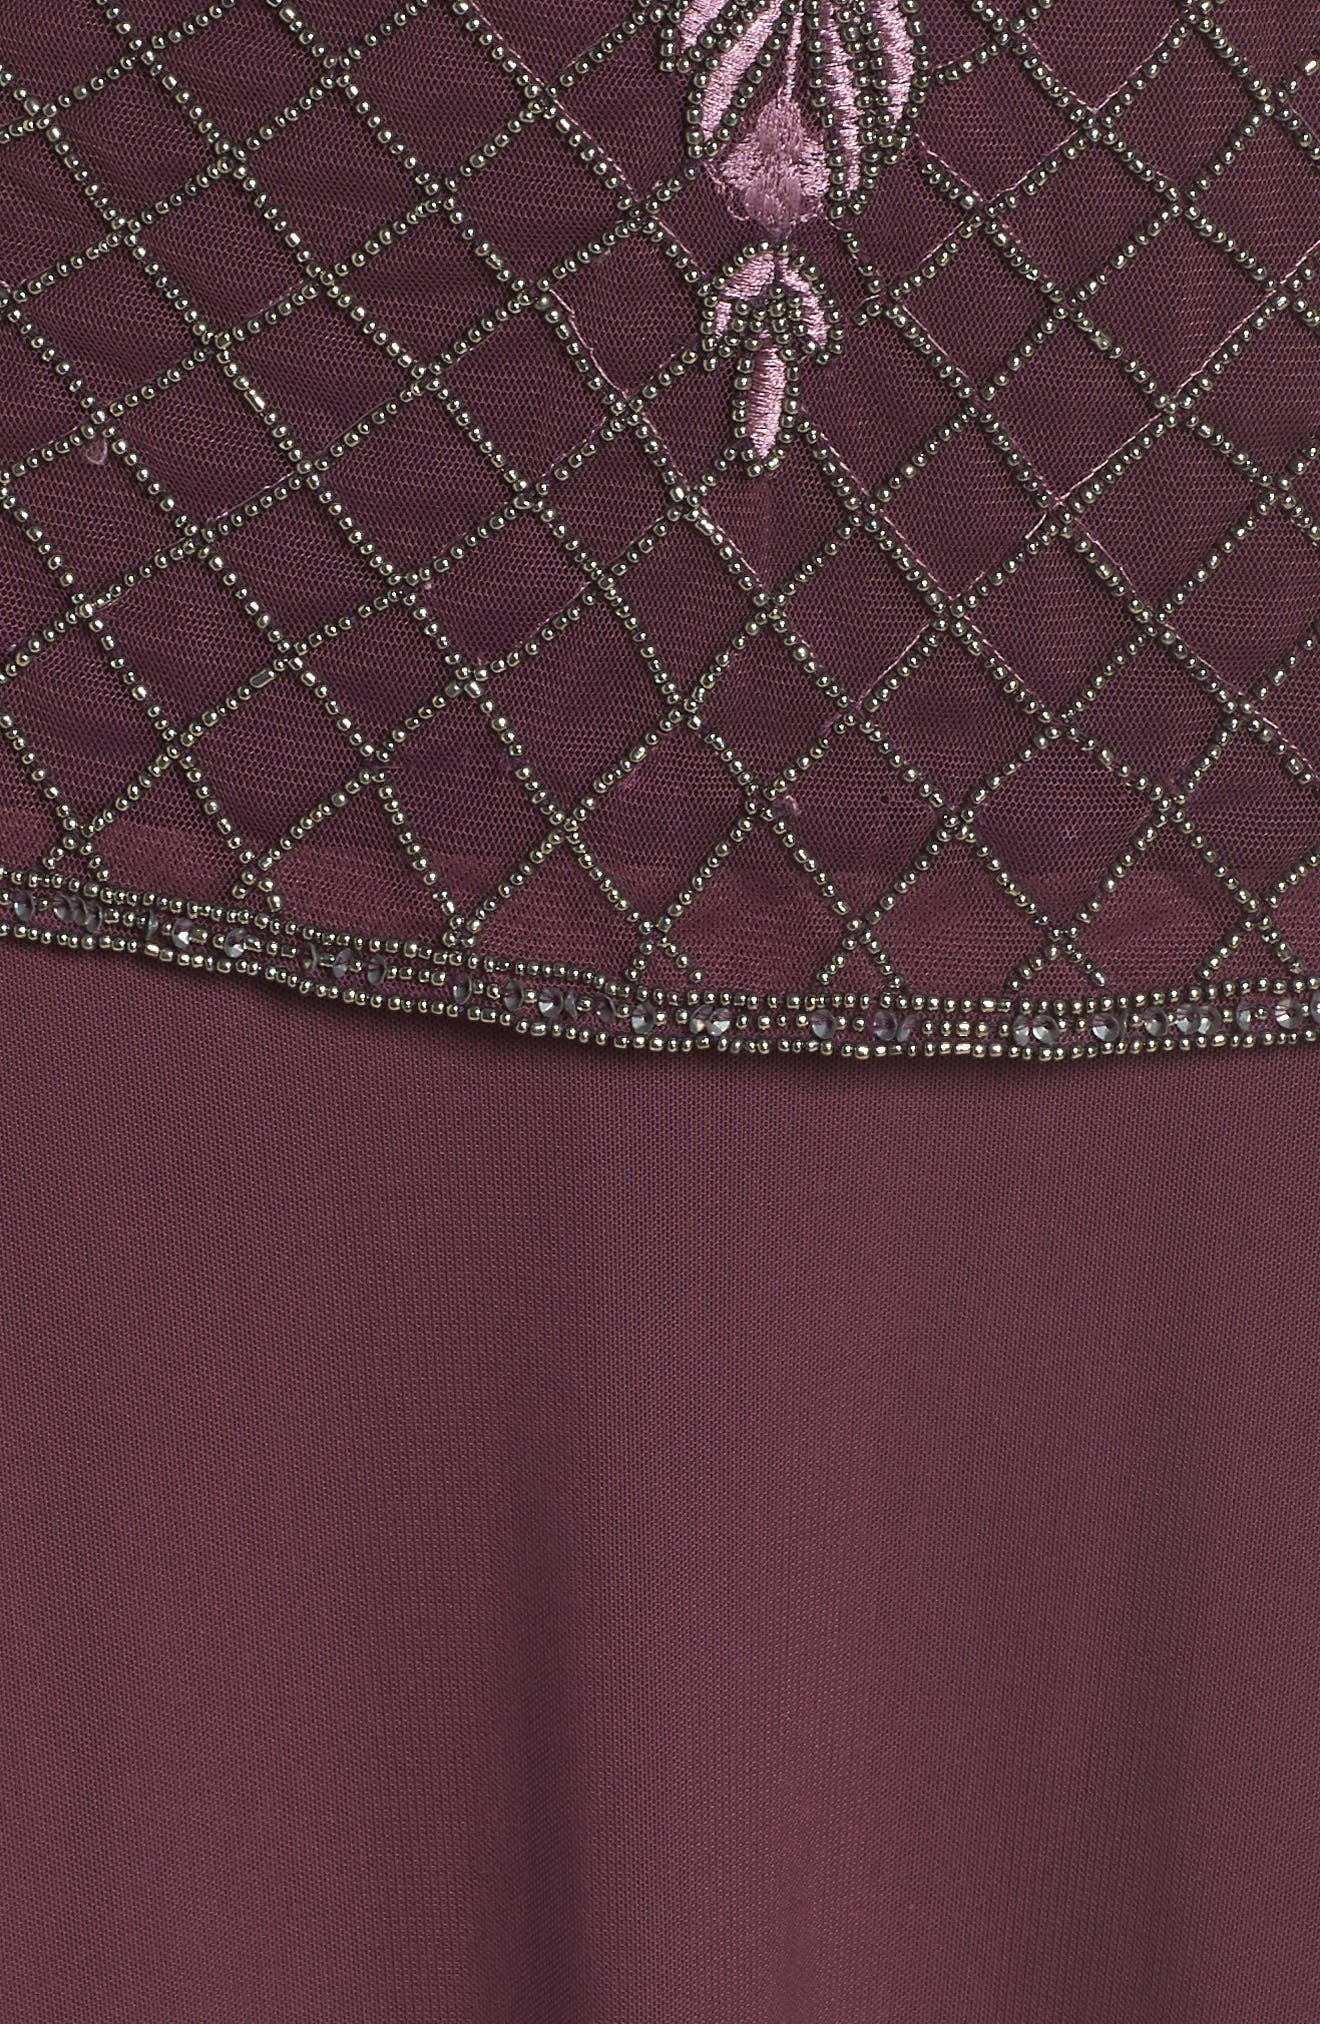 Beaded Bodice Mock Two-Piece Gown,                             Alternate thumbnail 5, color,                             Plum